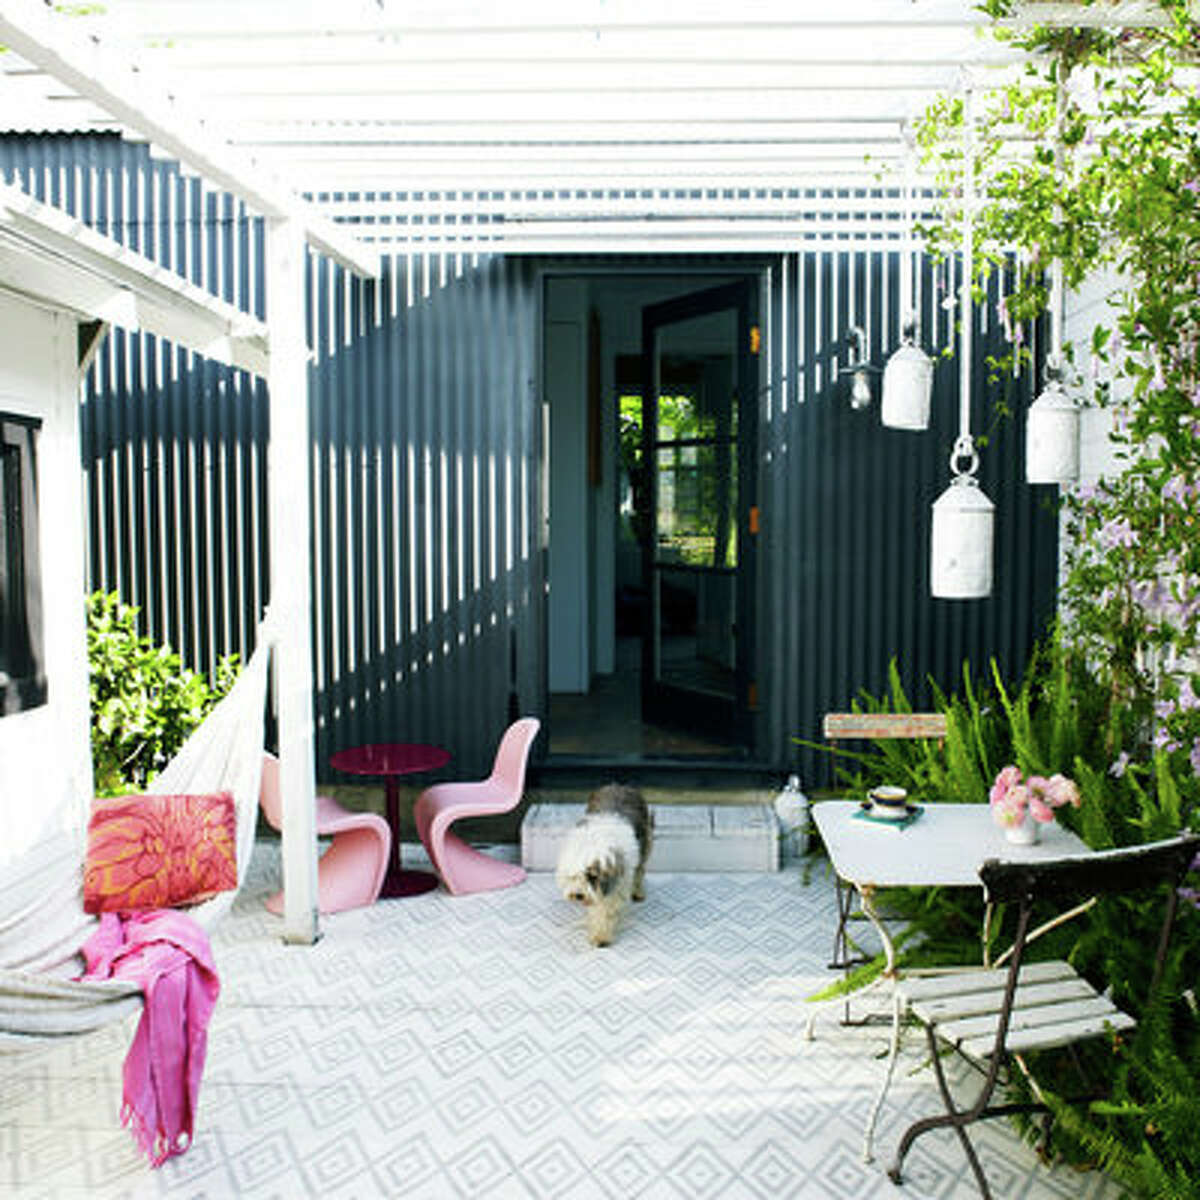 Subtle attraction Gray is the perfect color for adding subtle detail, like this painted deck. Imagine it with a color-fun, but with an entirely different feel. Soft gray plays against the pink for a restful, feminine vibe.